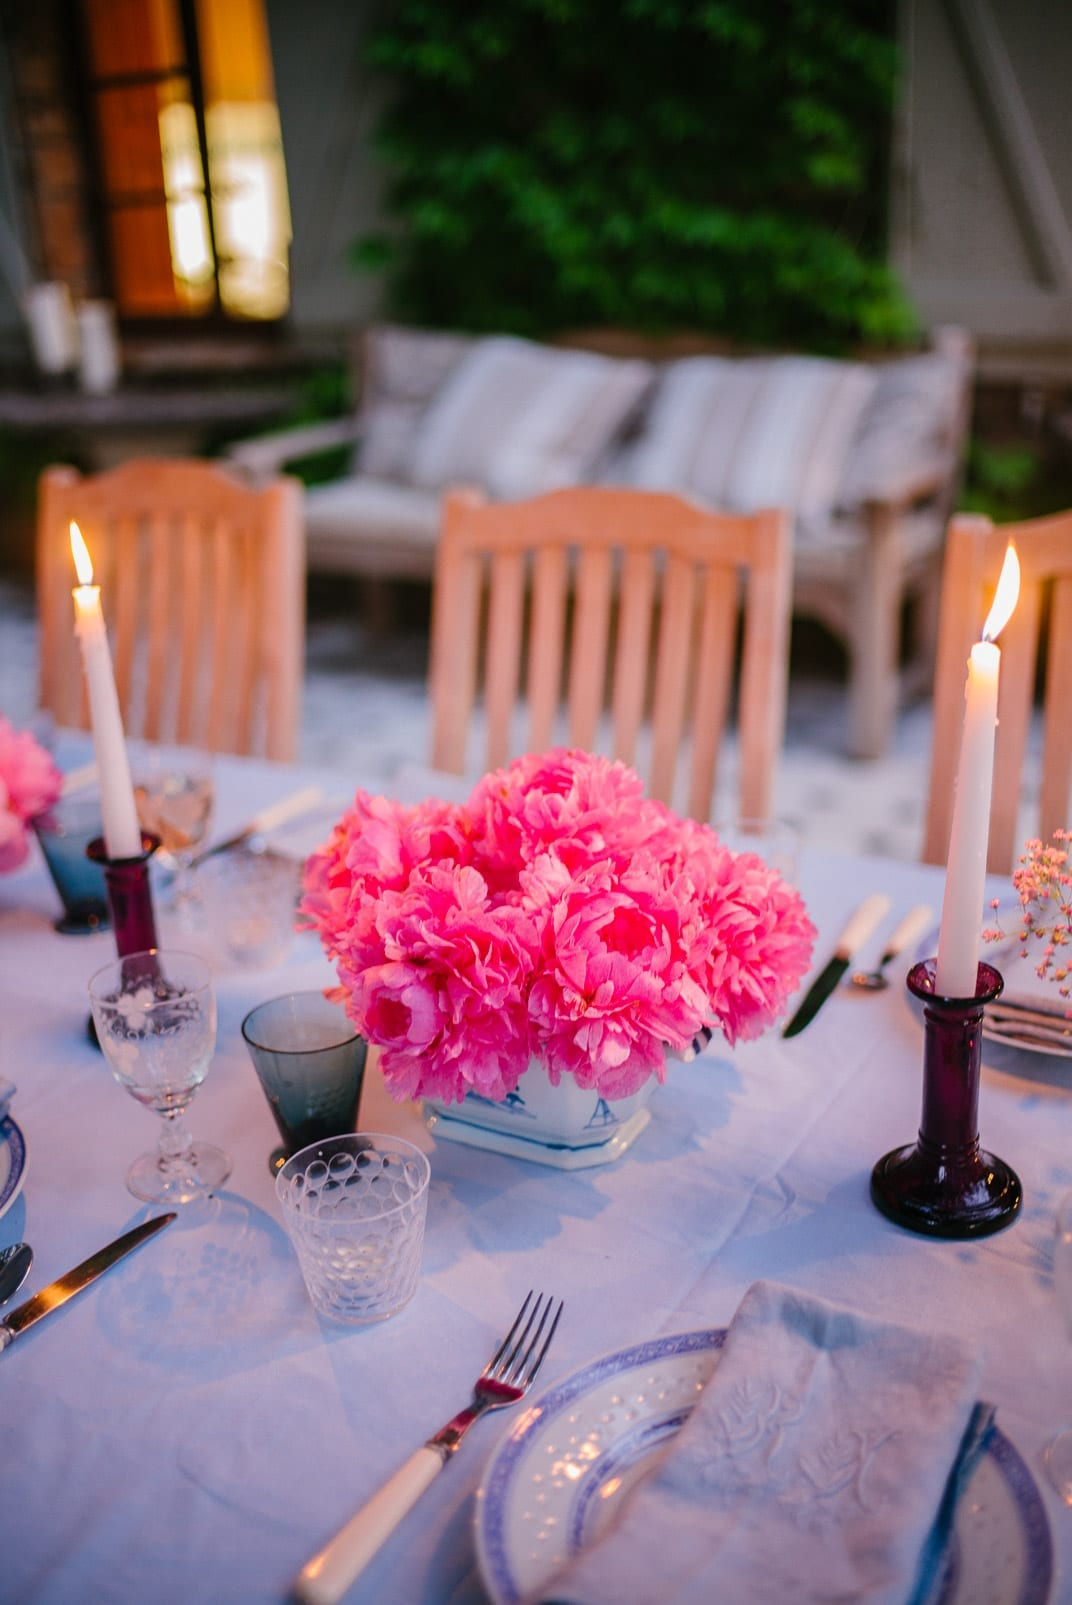 Setting the table from Start to Finish - Lucy Cuneo